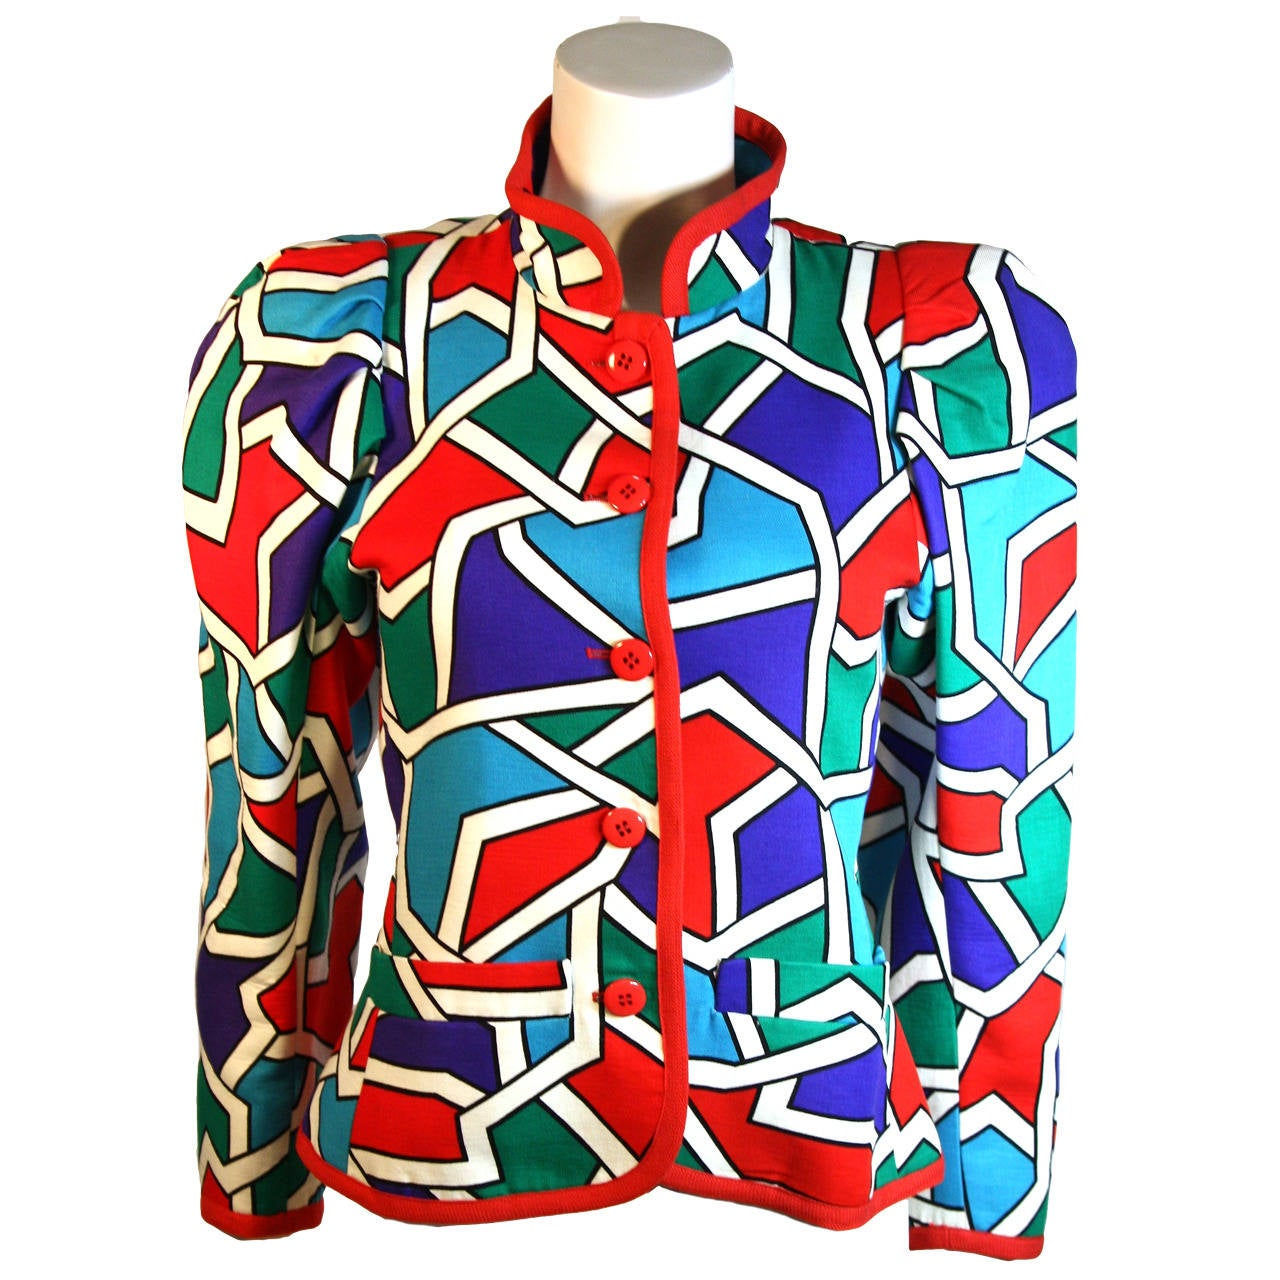 Yves Saint Laurent Color Block Design Jacket Size 38